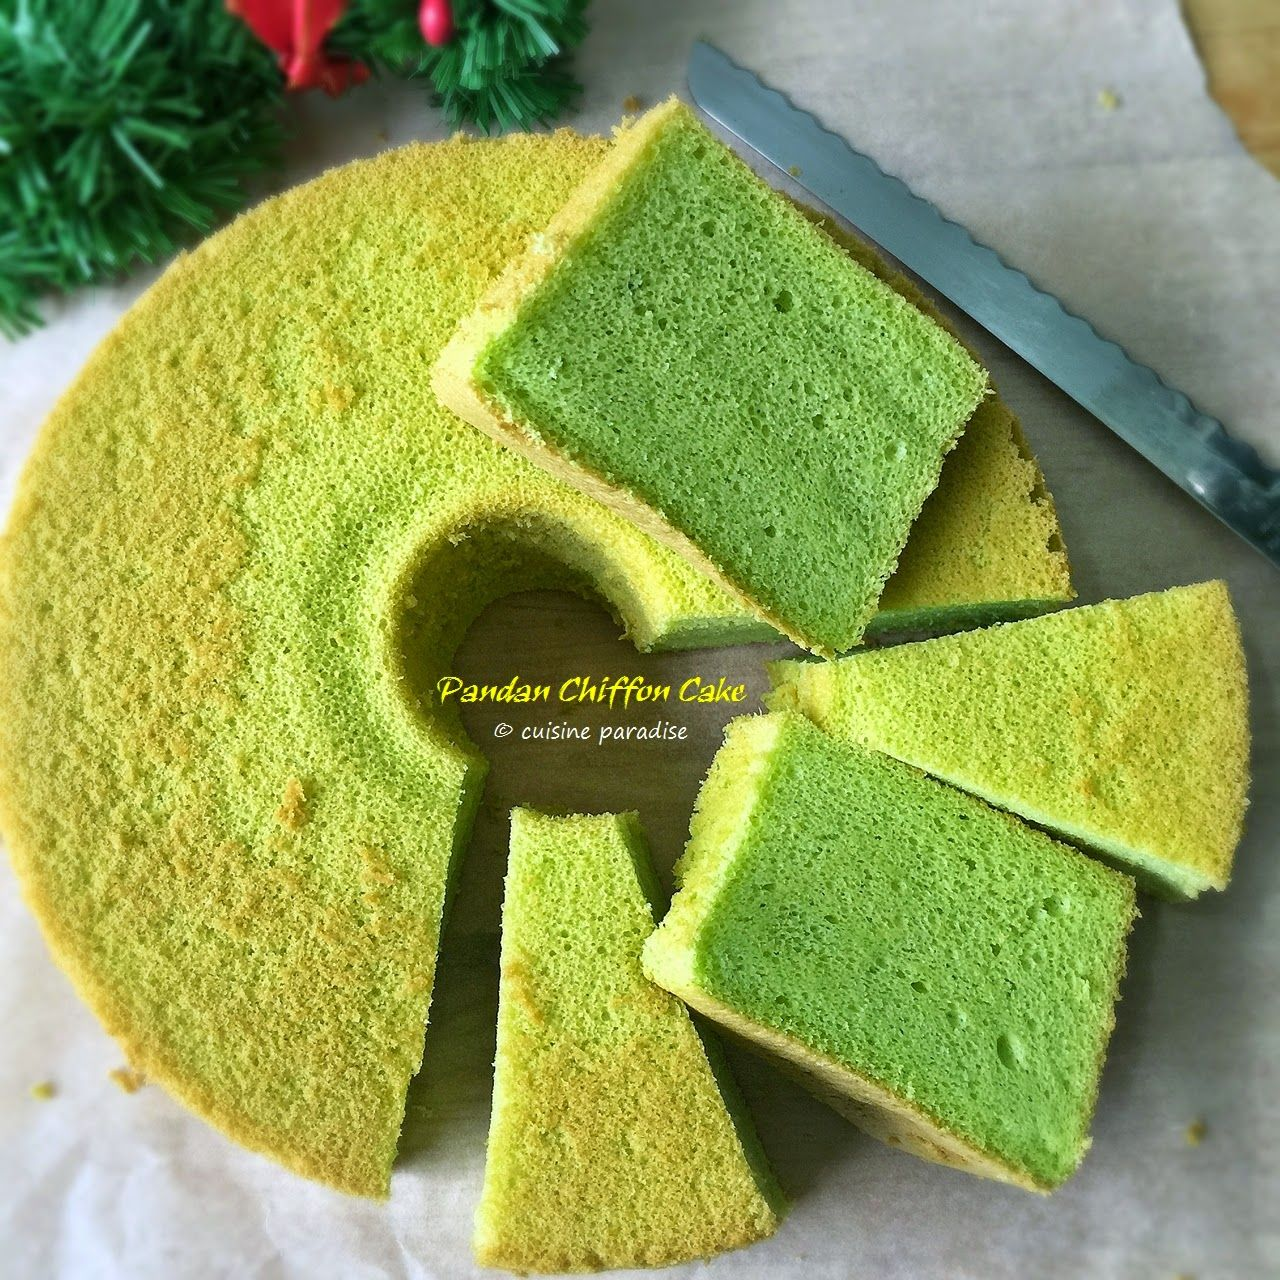 Cuisine Paradise | Singapore Food Blog | Recipes, Reviews And Travel: [recipes] Pandan Chiffon Cake - 香兰戚风蛋糕